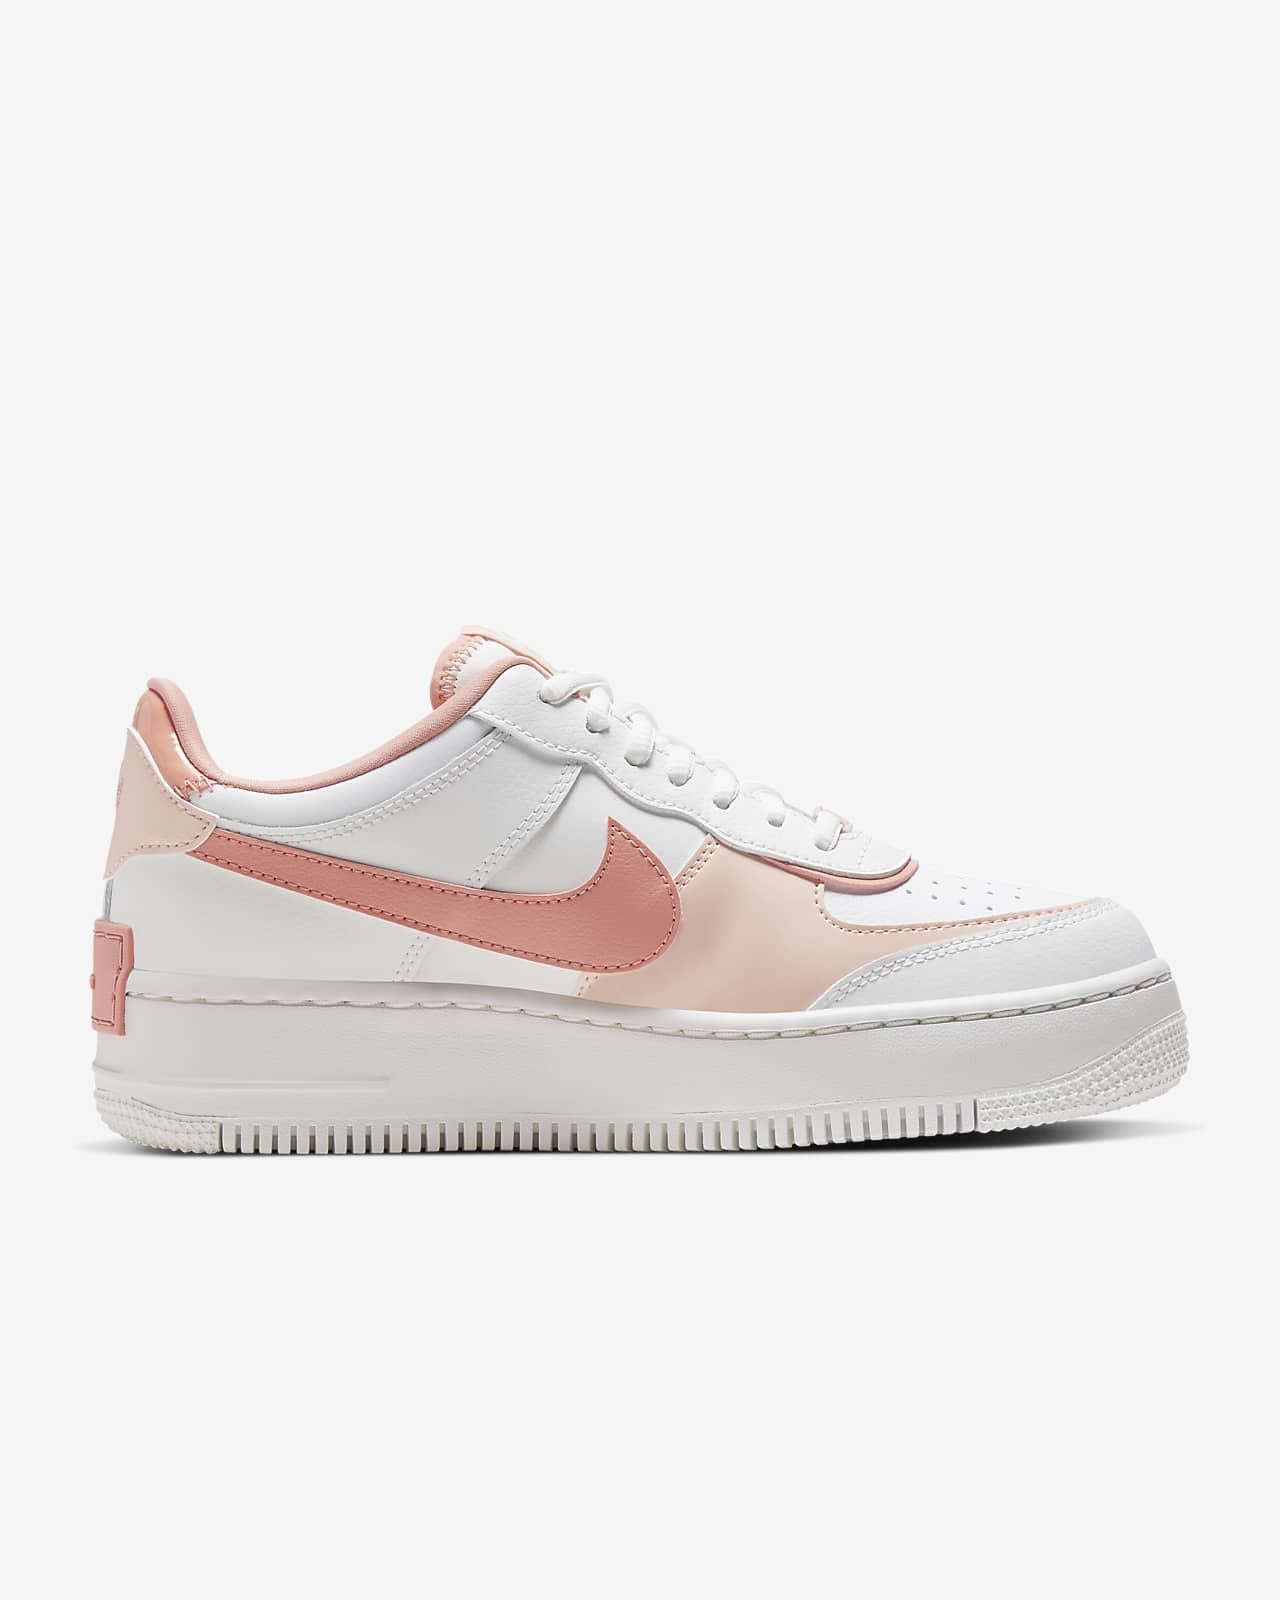 Nike Air Force 1 Shadow Women S Shoe Nike My The pristine leather sneakers have captured t. nike air force 1 shadow women s shoe